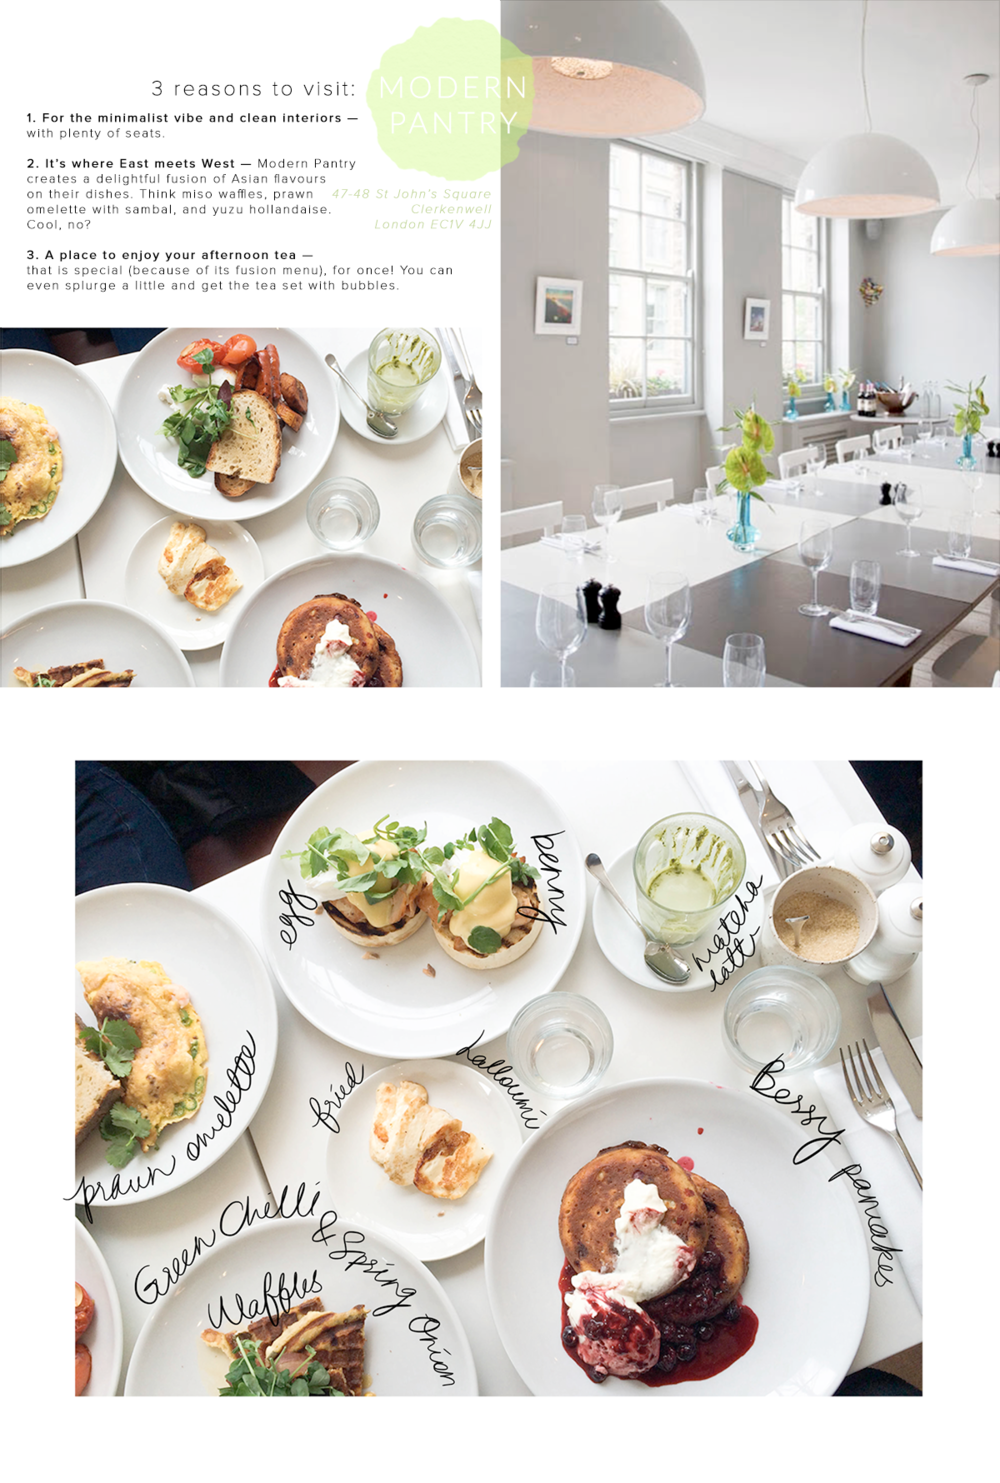 London Cafe: MODERN PANTRY  1. For the minimalist vibe and clean interiors — with plenty of seats.  2. It's where East meets West — Modern Pantry  creates a delightful fusion of Asian flavours  on their dishes. Think miso waffles, prawn  omelette with sambal, and yuzu hollandaise. Cool, no?  3. A place to enjoy your afternoon tea — that is special (because of its fusion menu), for once! You can  even splurge a little and get the tea set with bubbles.